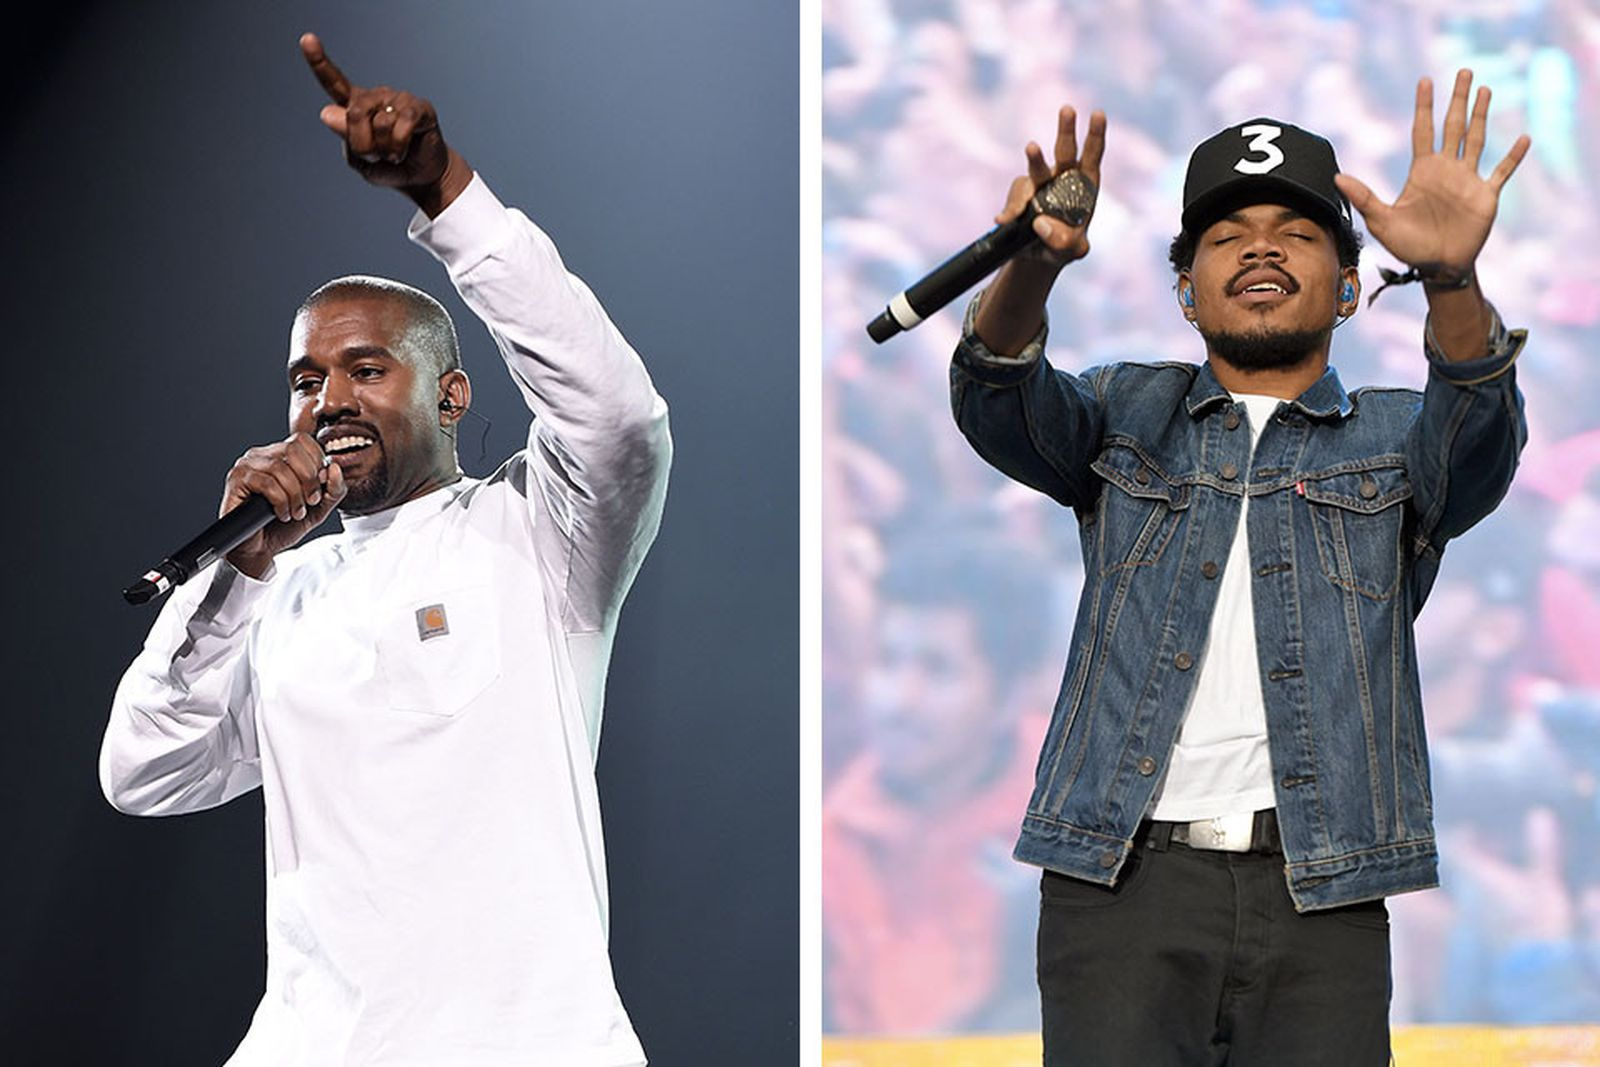 Kanye West Confirms 'Good Ass Job' Project with Chance the Rapper